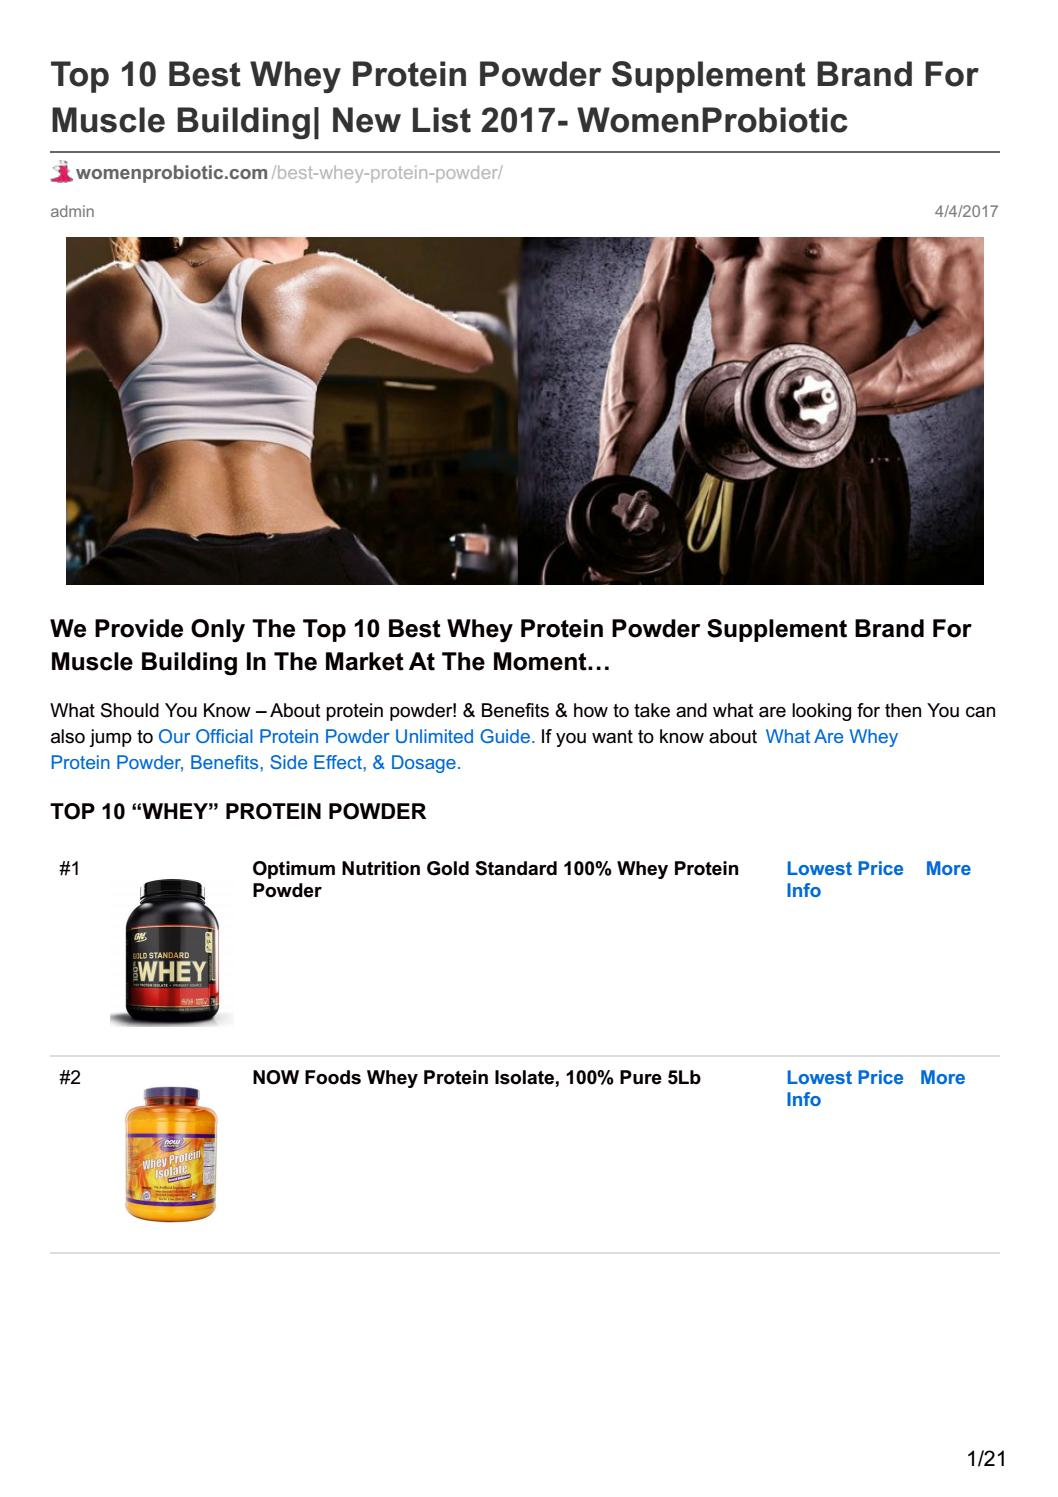 Top Muscle Building Supplements Brands from Peopleforcarlandrews